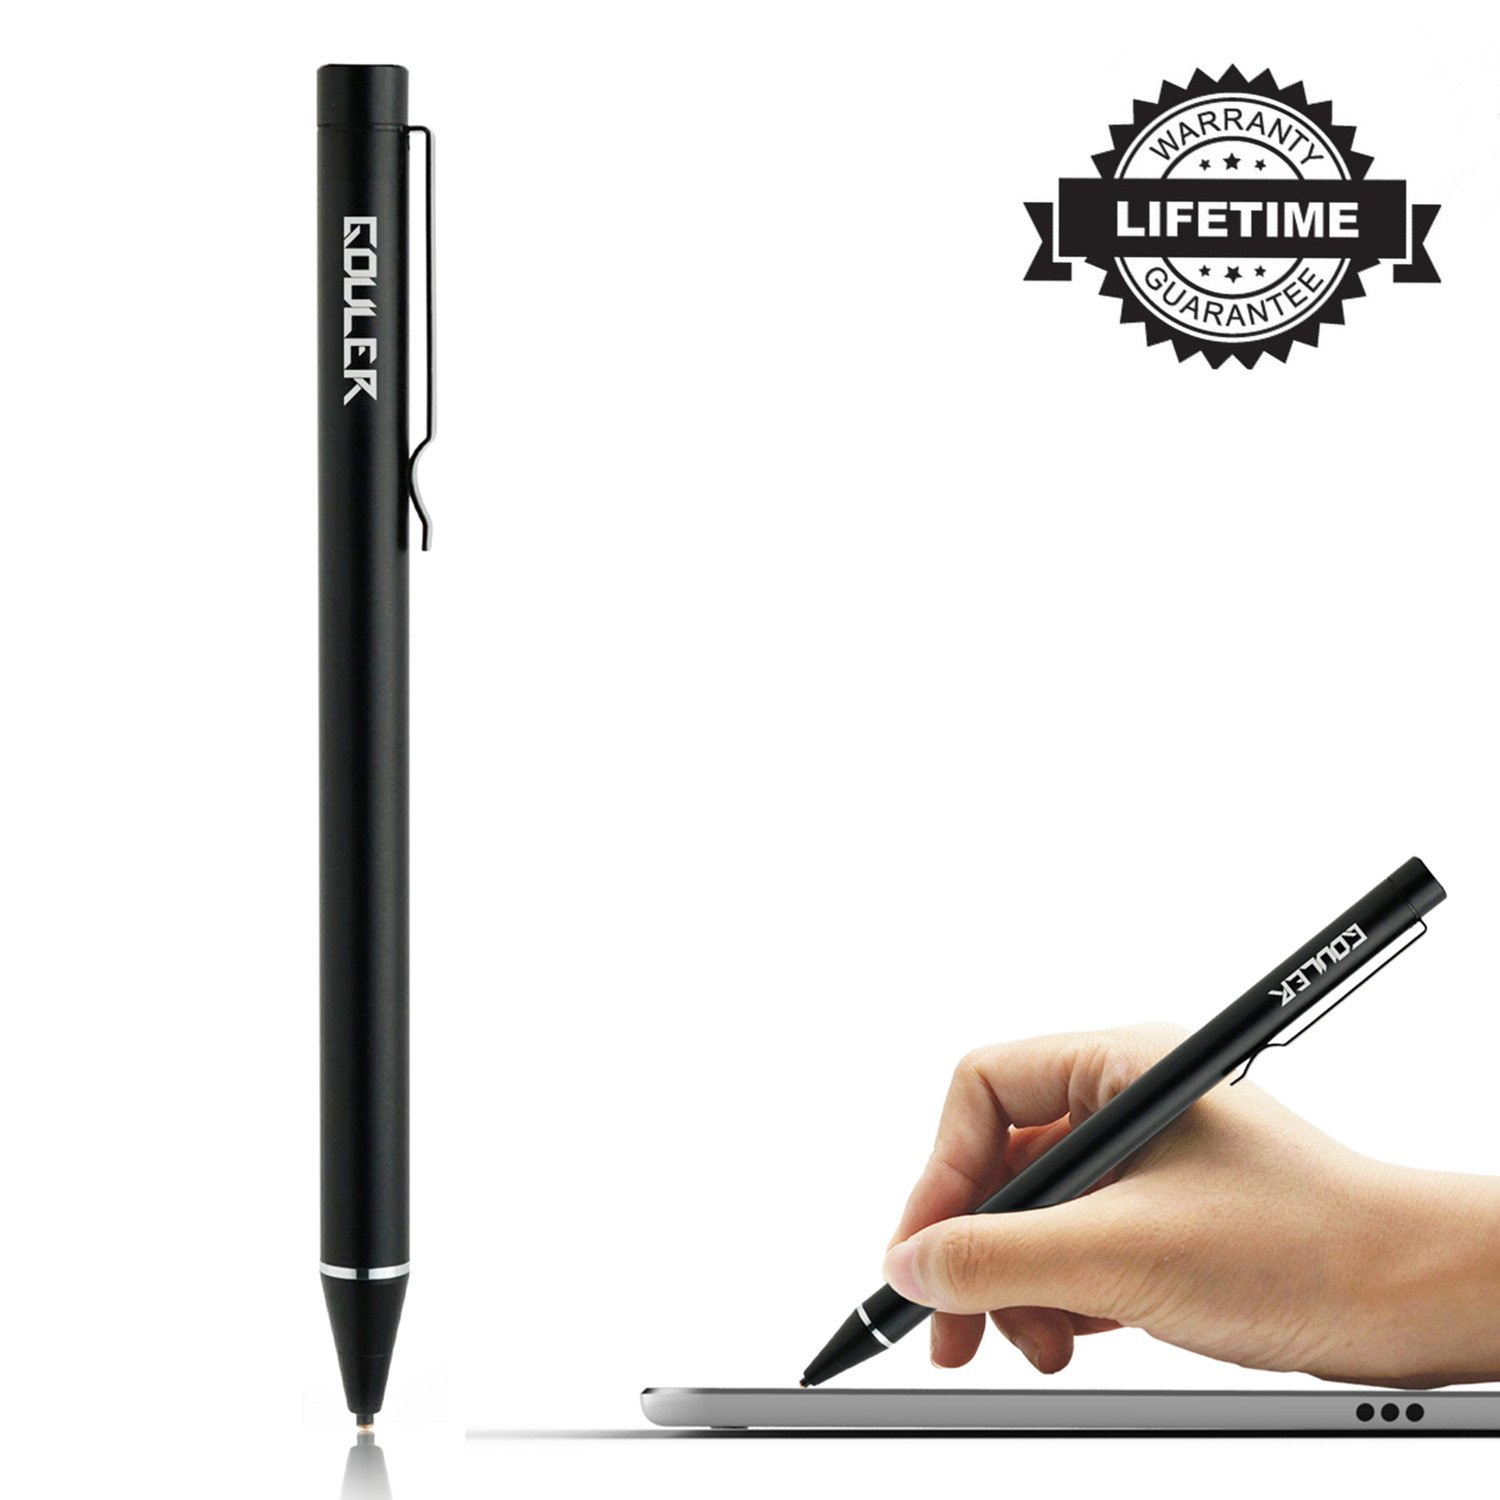 High-Precision Stylus Pen with 1.6mm Fine Tip for iPad/iPhone X/8/8 Plus, Compatible with Samsung Tablets and Other Capacitive Touch Screen Devices, Good for Drawing and Writing on iPad